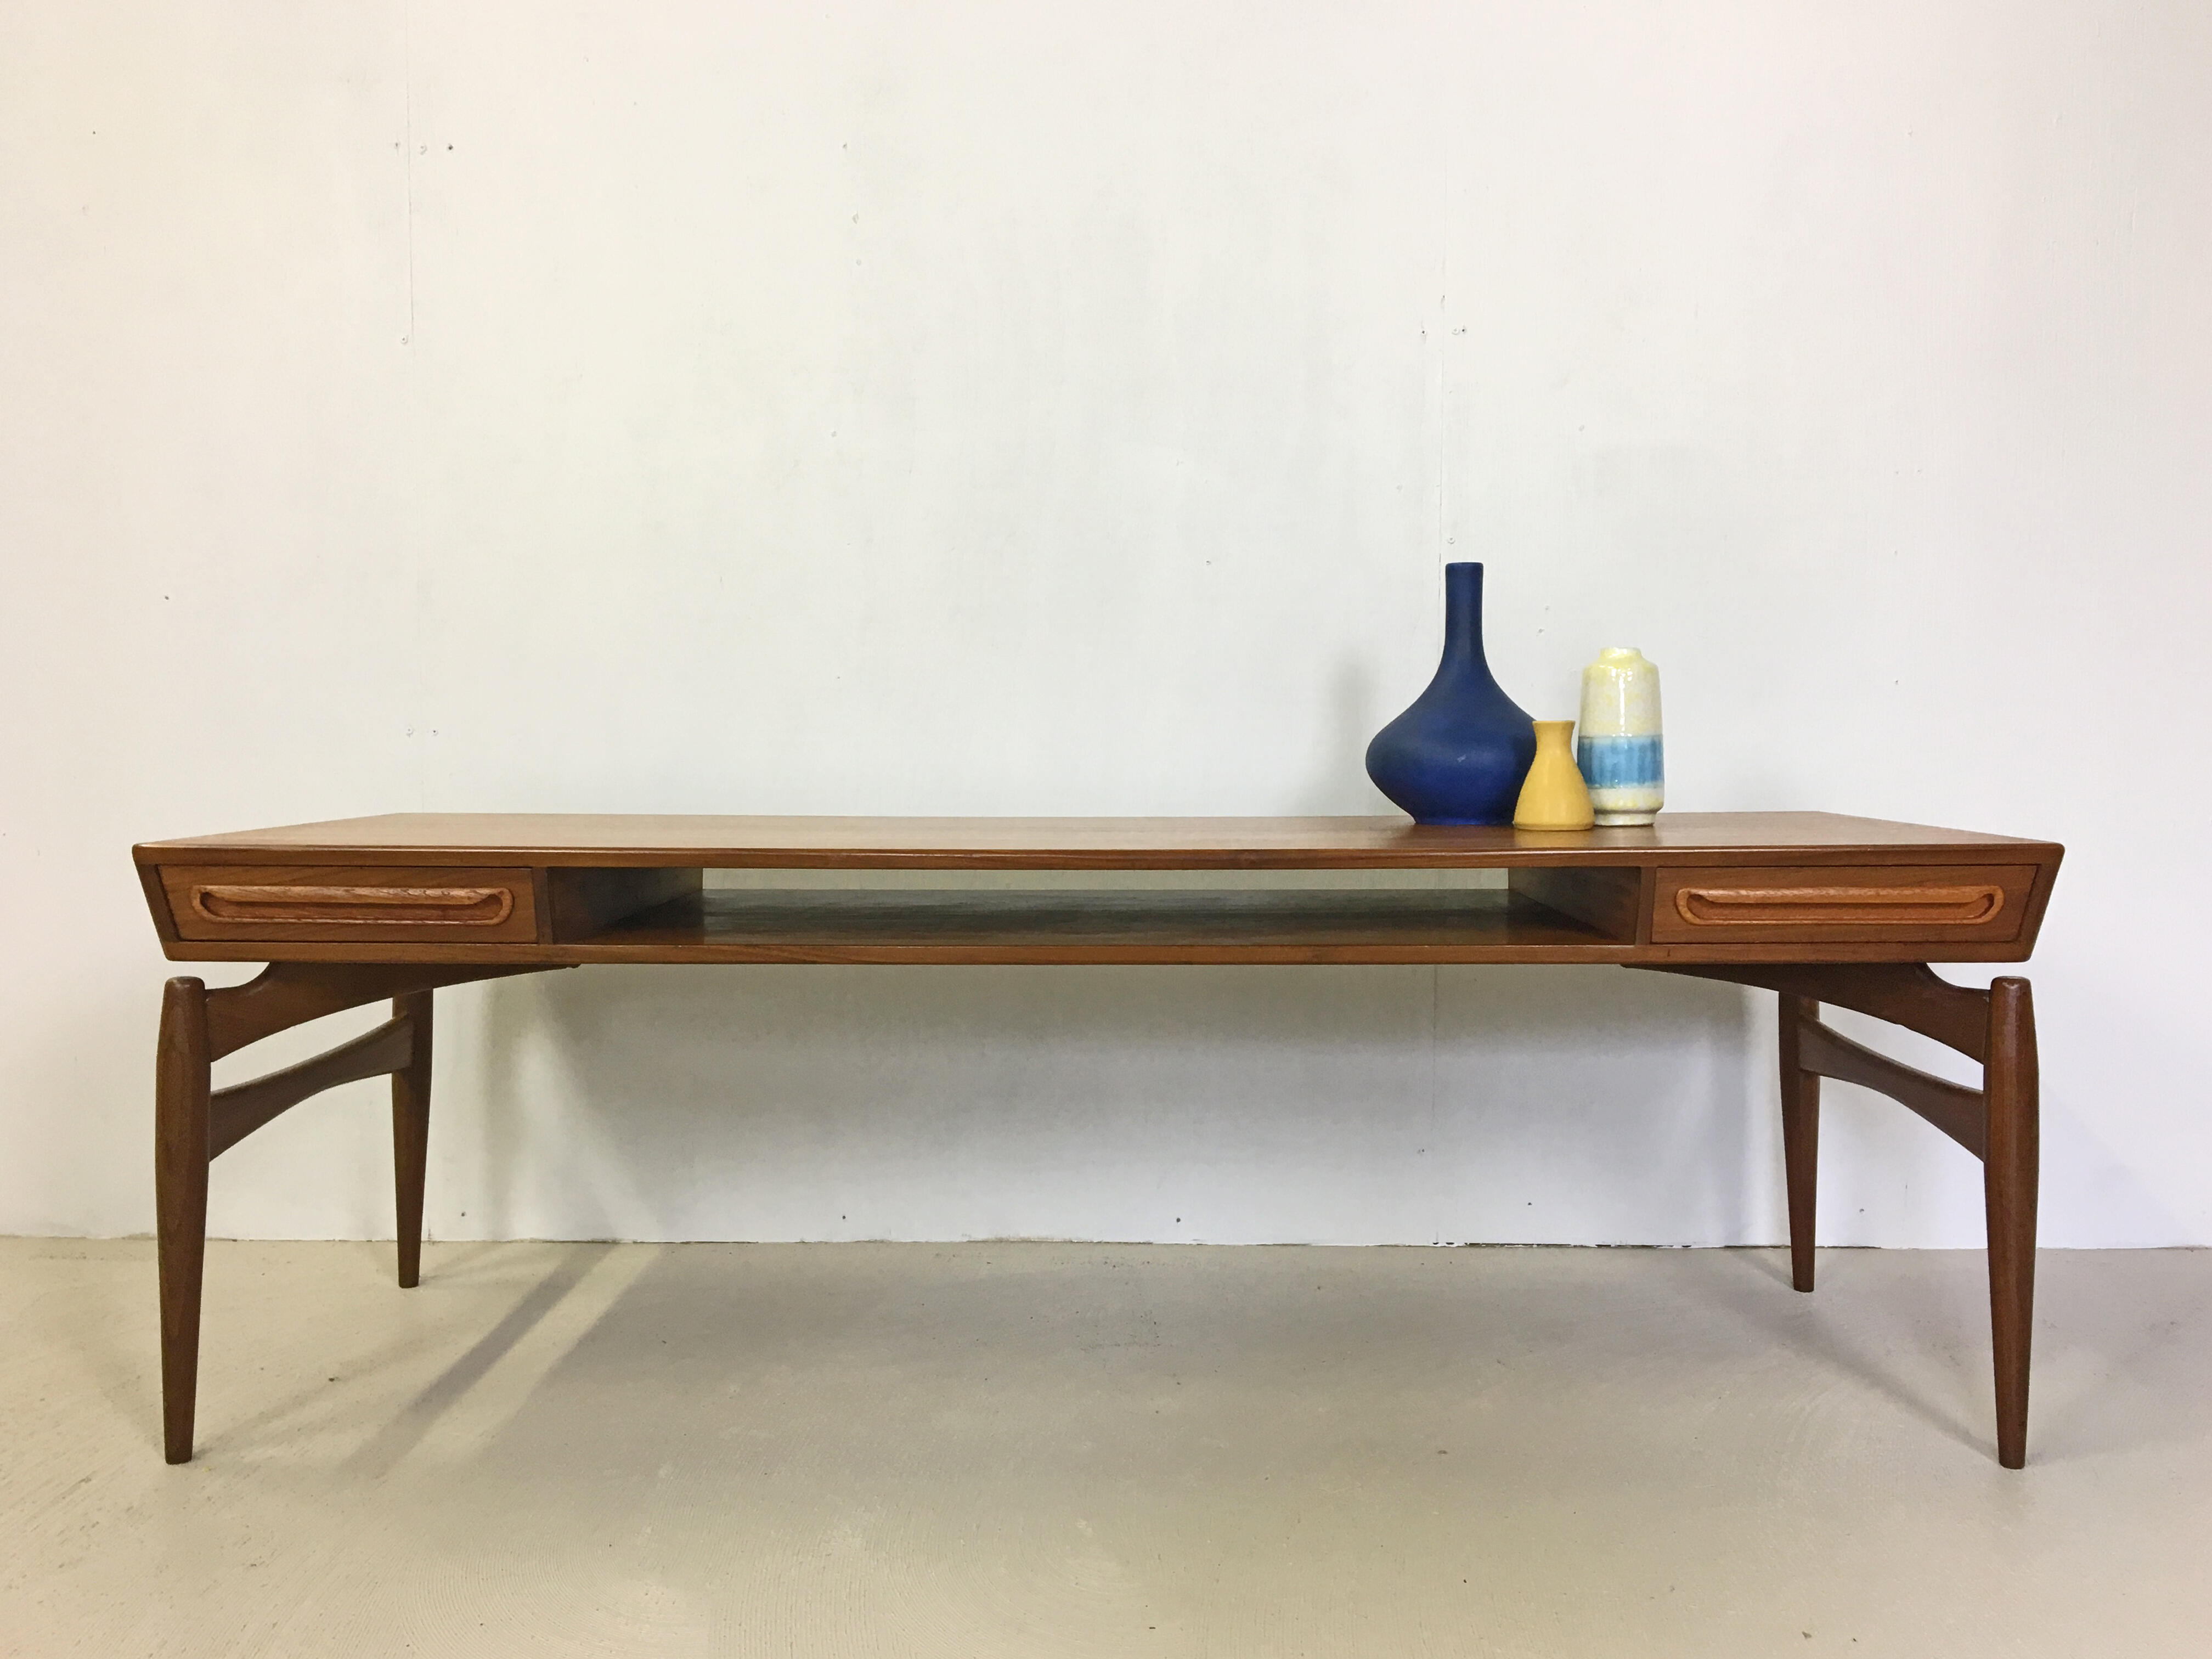 Danish Modern Teak Coffee Table by Johannes Andersen